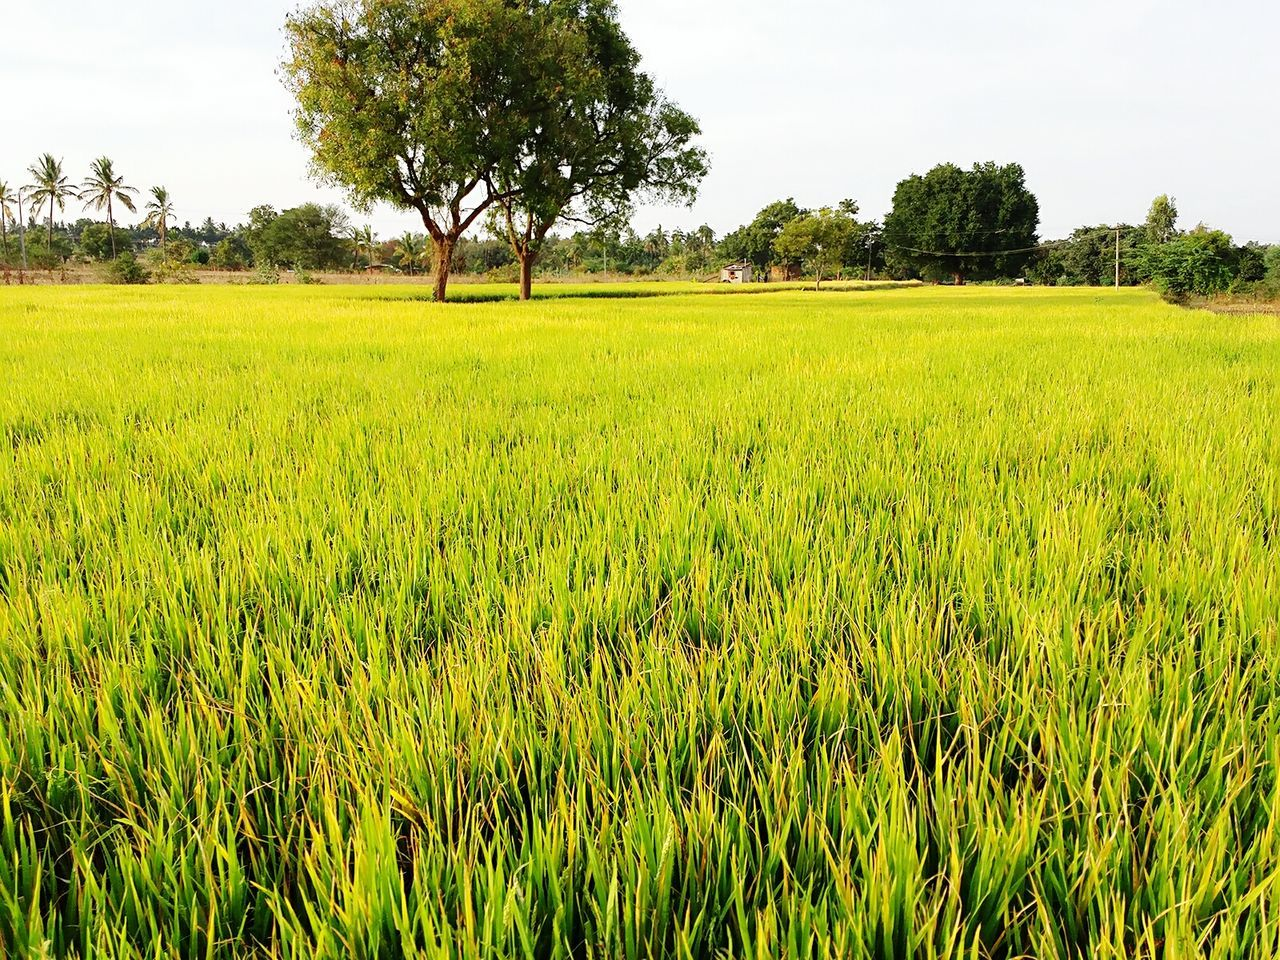 tree, field, agriculture, growth, nature, landscape, green color, farm, tranquility, tranquil scene, crop, beauty in nature, scenics, grass, no people, outdoors, day, rural scene, rice paddy, cereal plant, sky